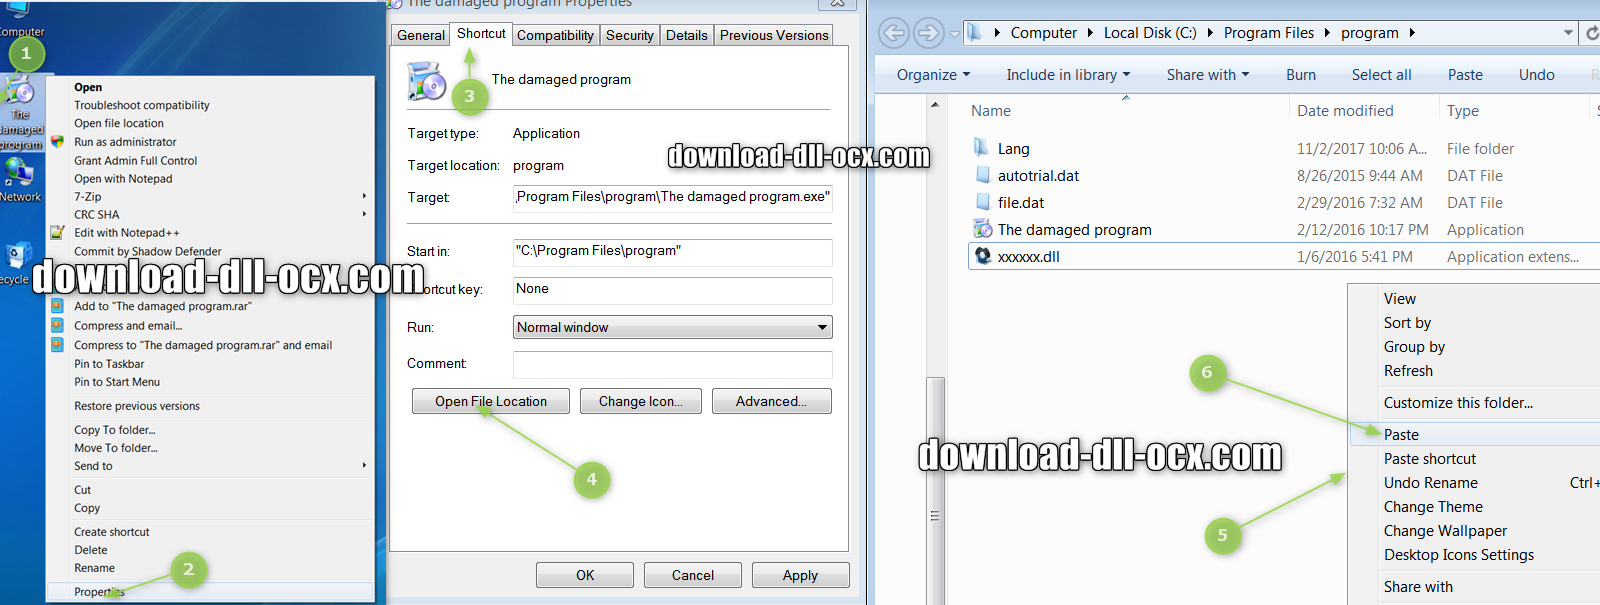 how to install ISoundHandler.dll file? for fix missing